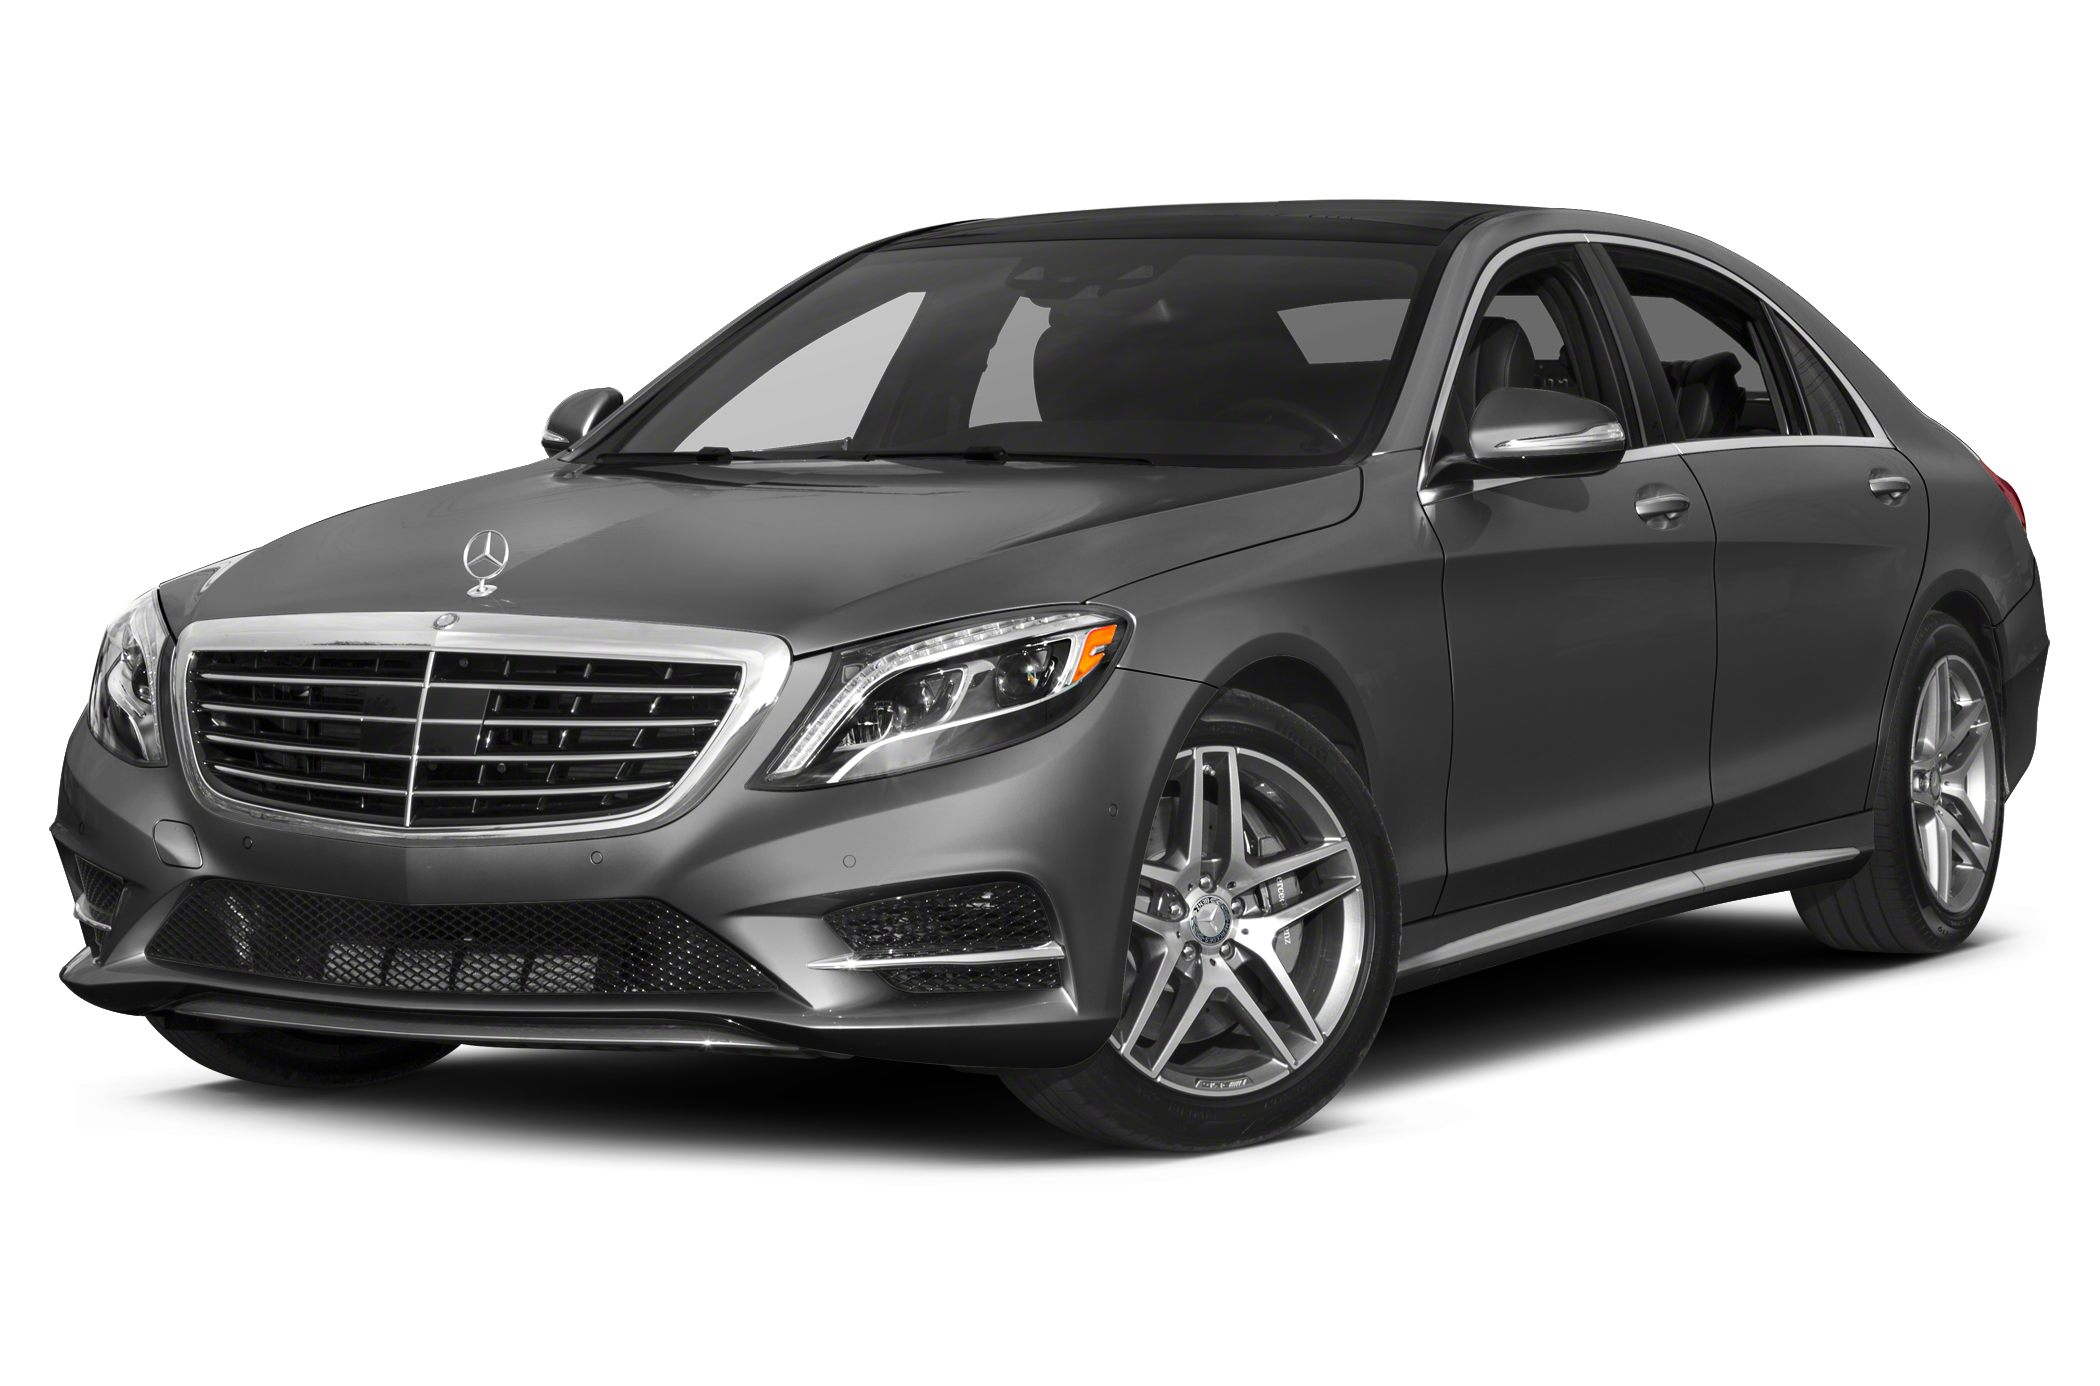 2014 Mercedes-Benz S-Class S550 4MATIC Sedan for sale in New London for $95,988 with 10,139 miles.